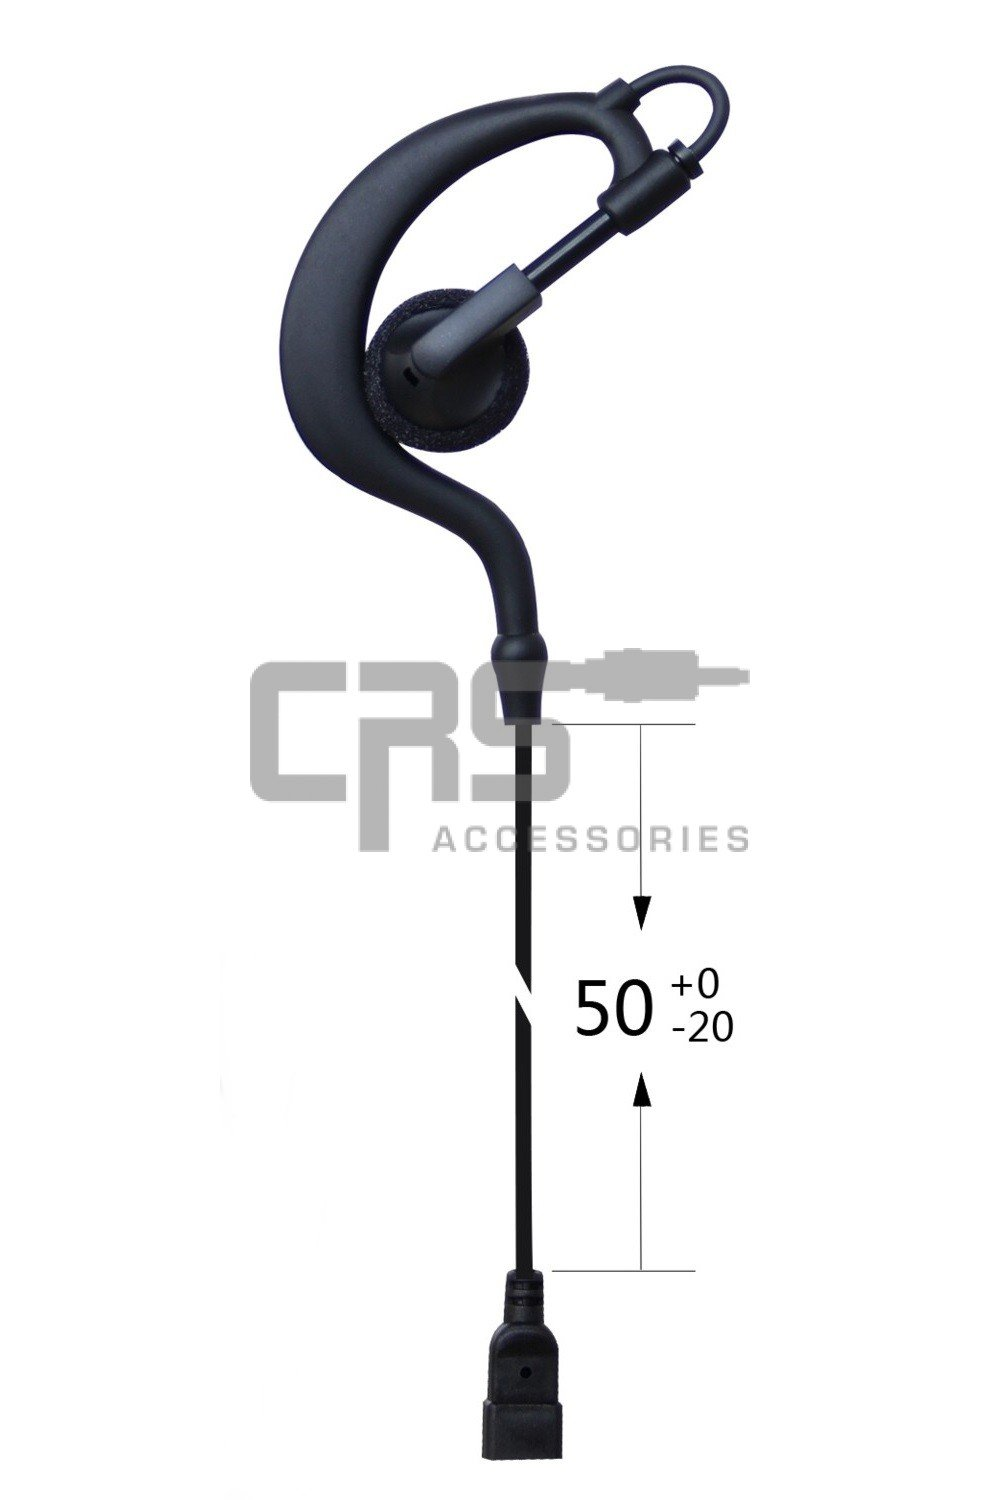 CRS Earhook Earpiece To Suit CRS-1WH/2WH/3WH